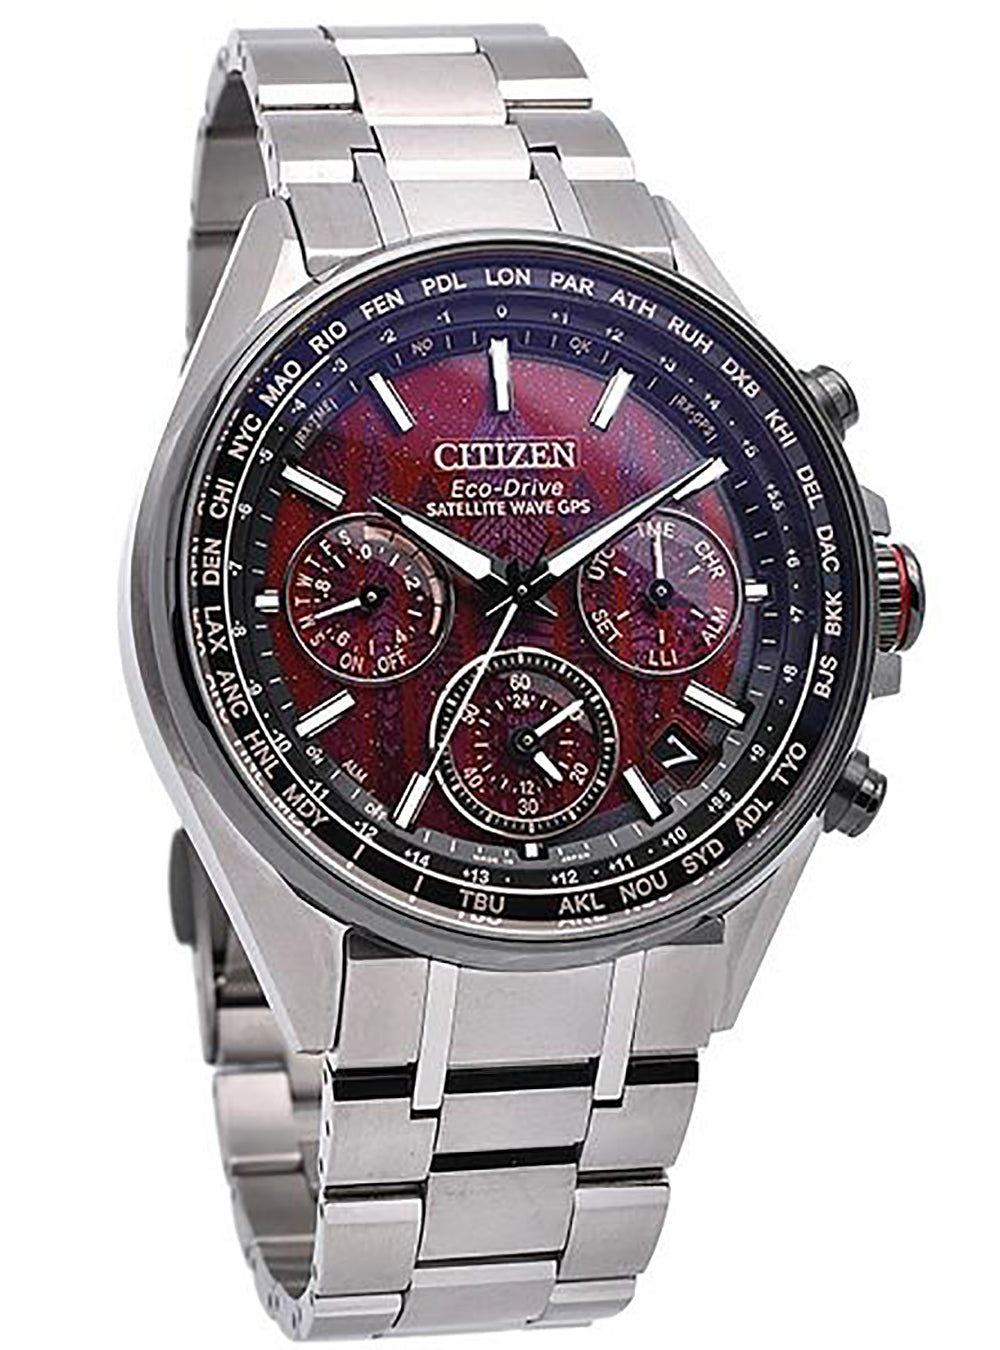 CITIZEN ATTESA SATELLITE WAVE GPS JOUNETSU COLLECTION CC4005-71Z LIMITED 1100 MADE IN JAPAN JDM